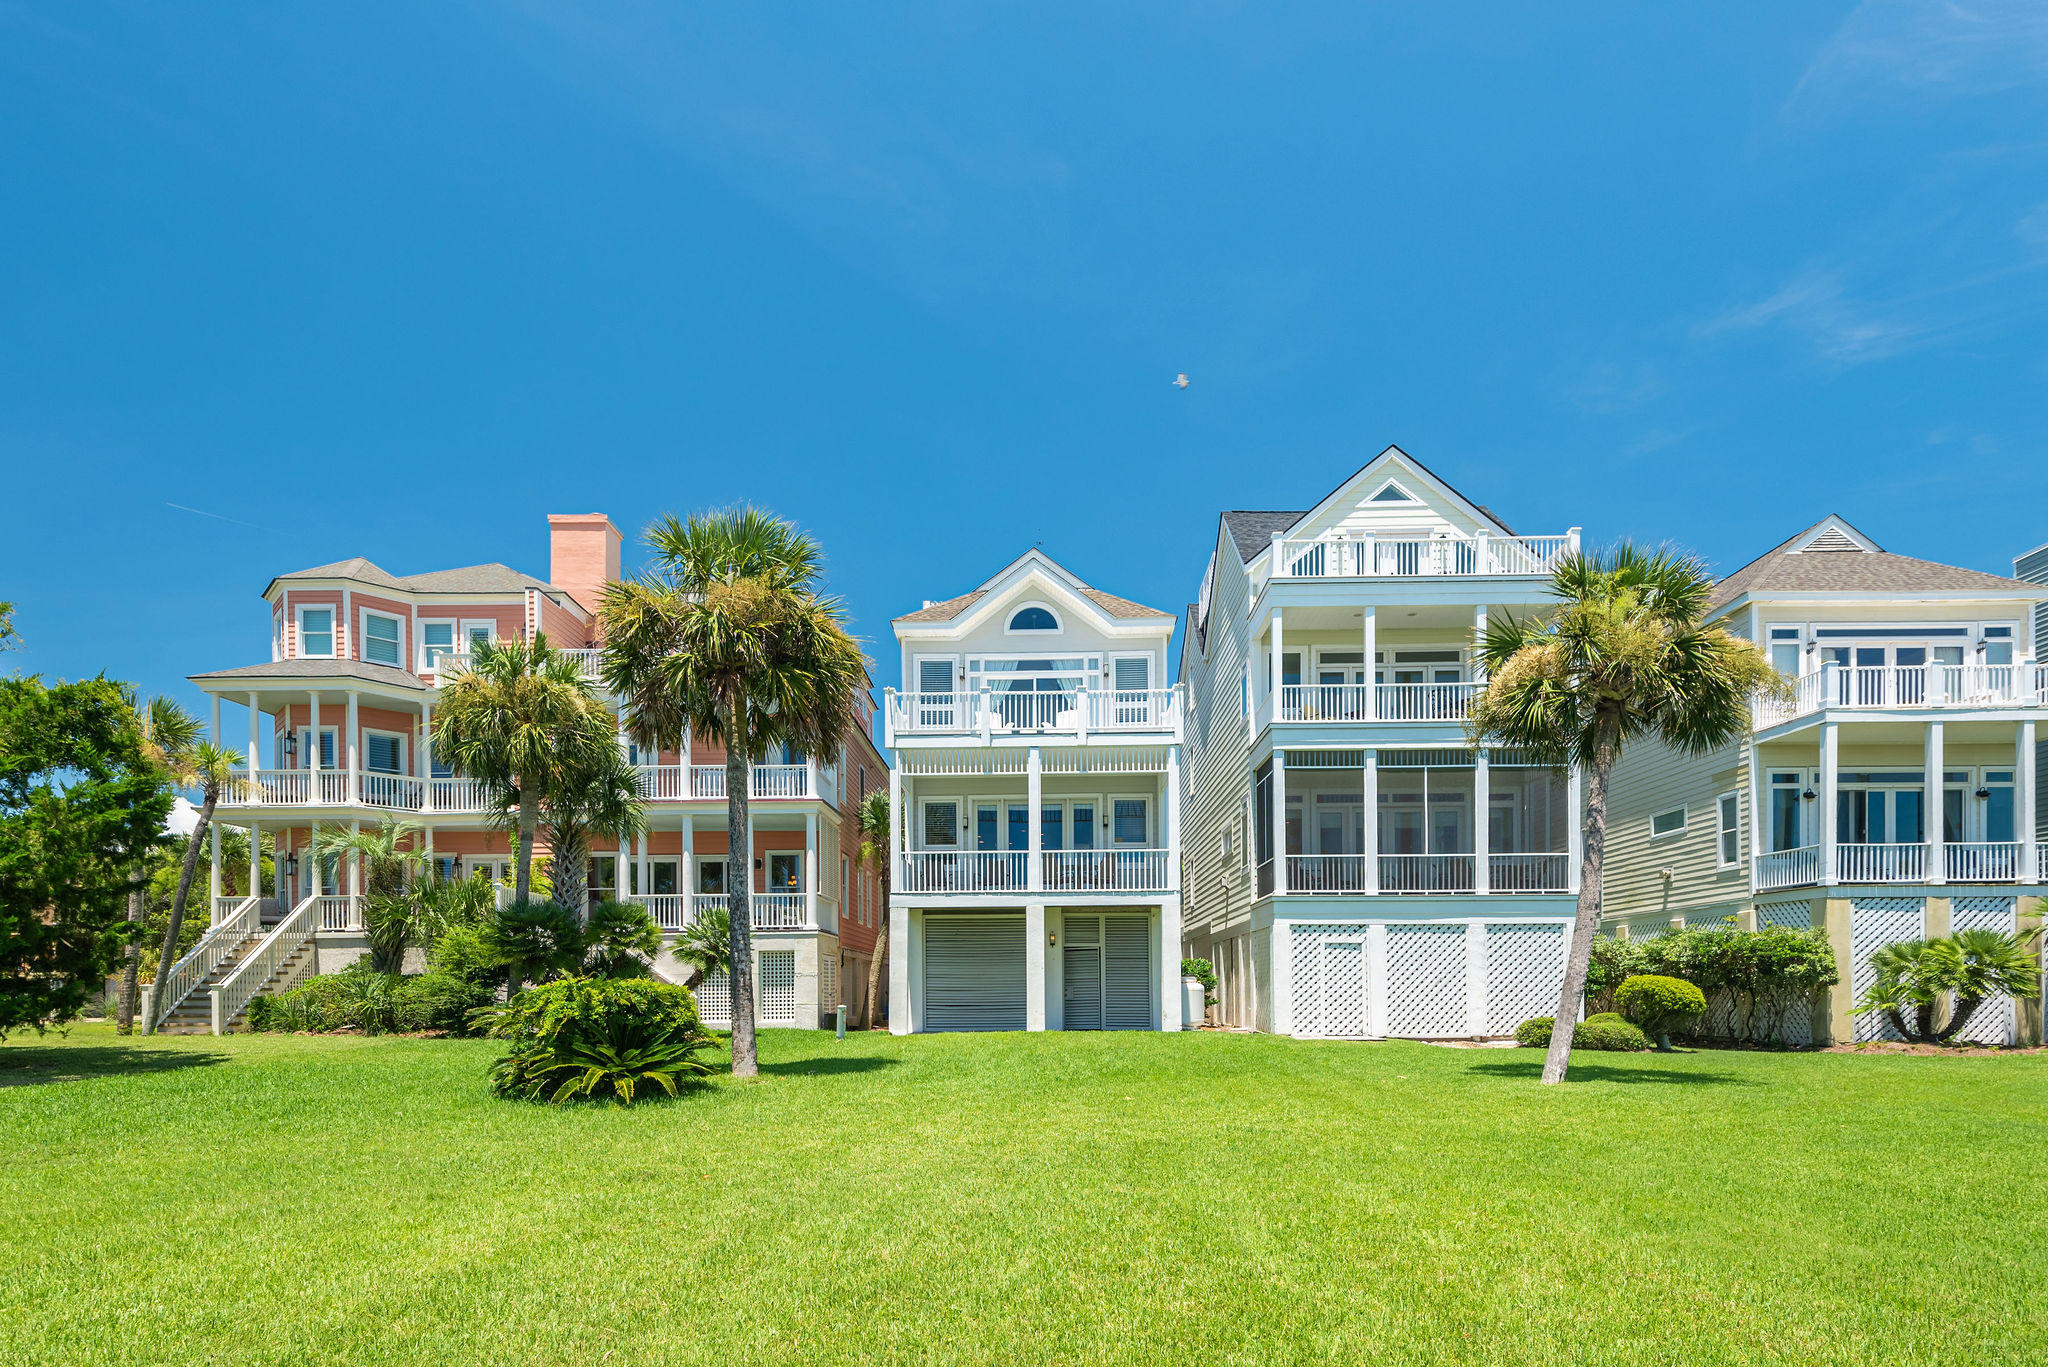 Wild Dunes Homes For Sale - 15 Grand Pavilion, Isle of Palms, SC - 15